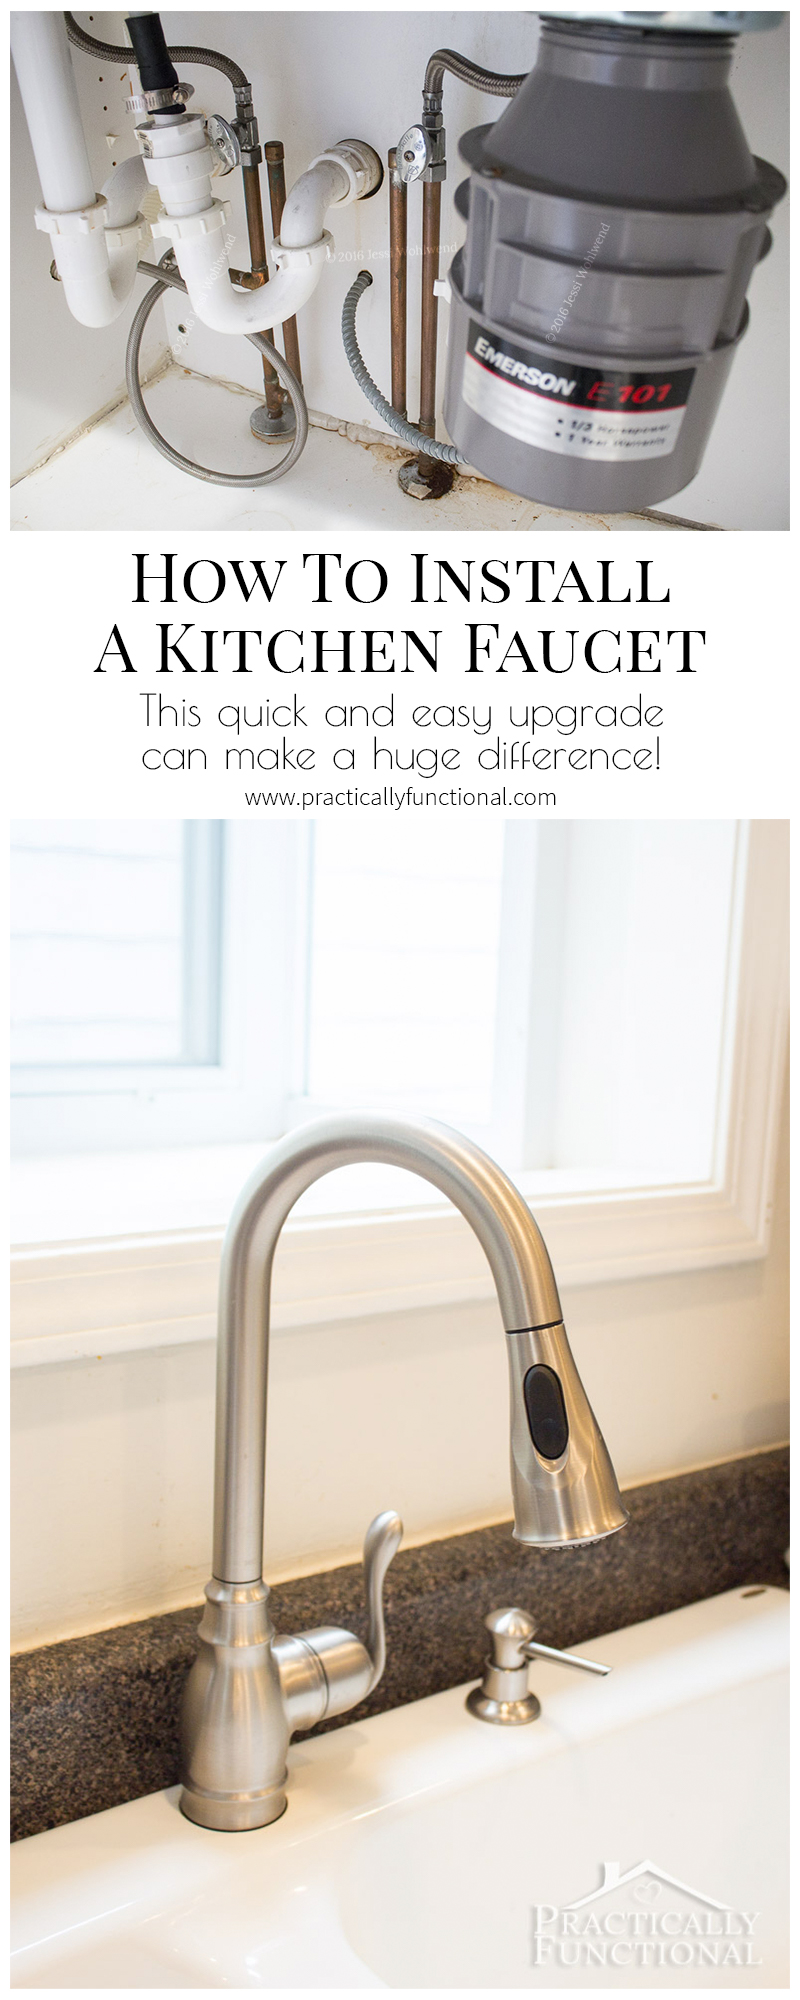 how to install a kitchen faucet learn how to install a kitchen faucet in under an hour